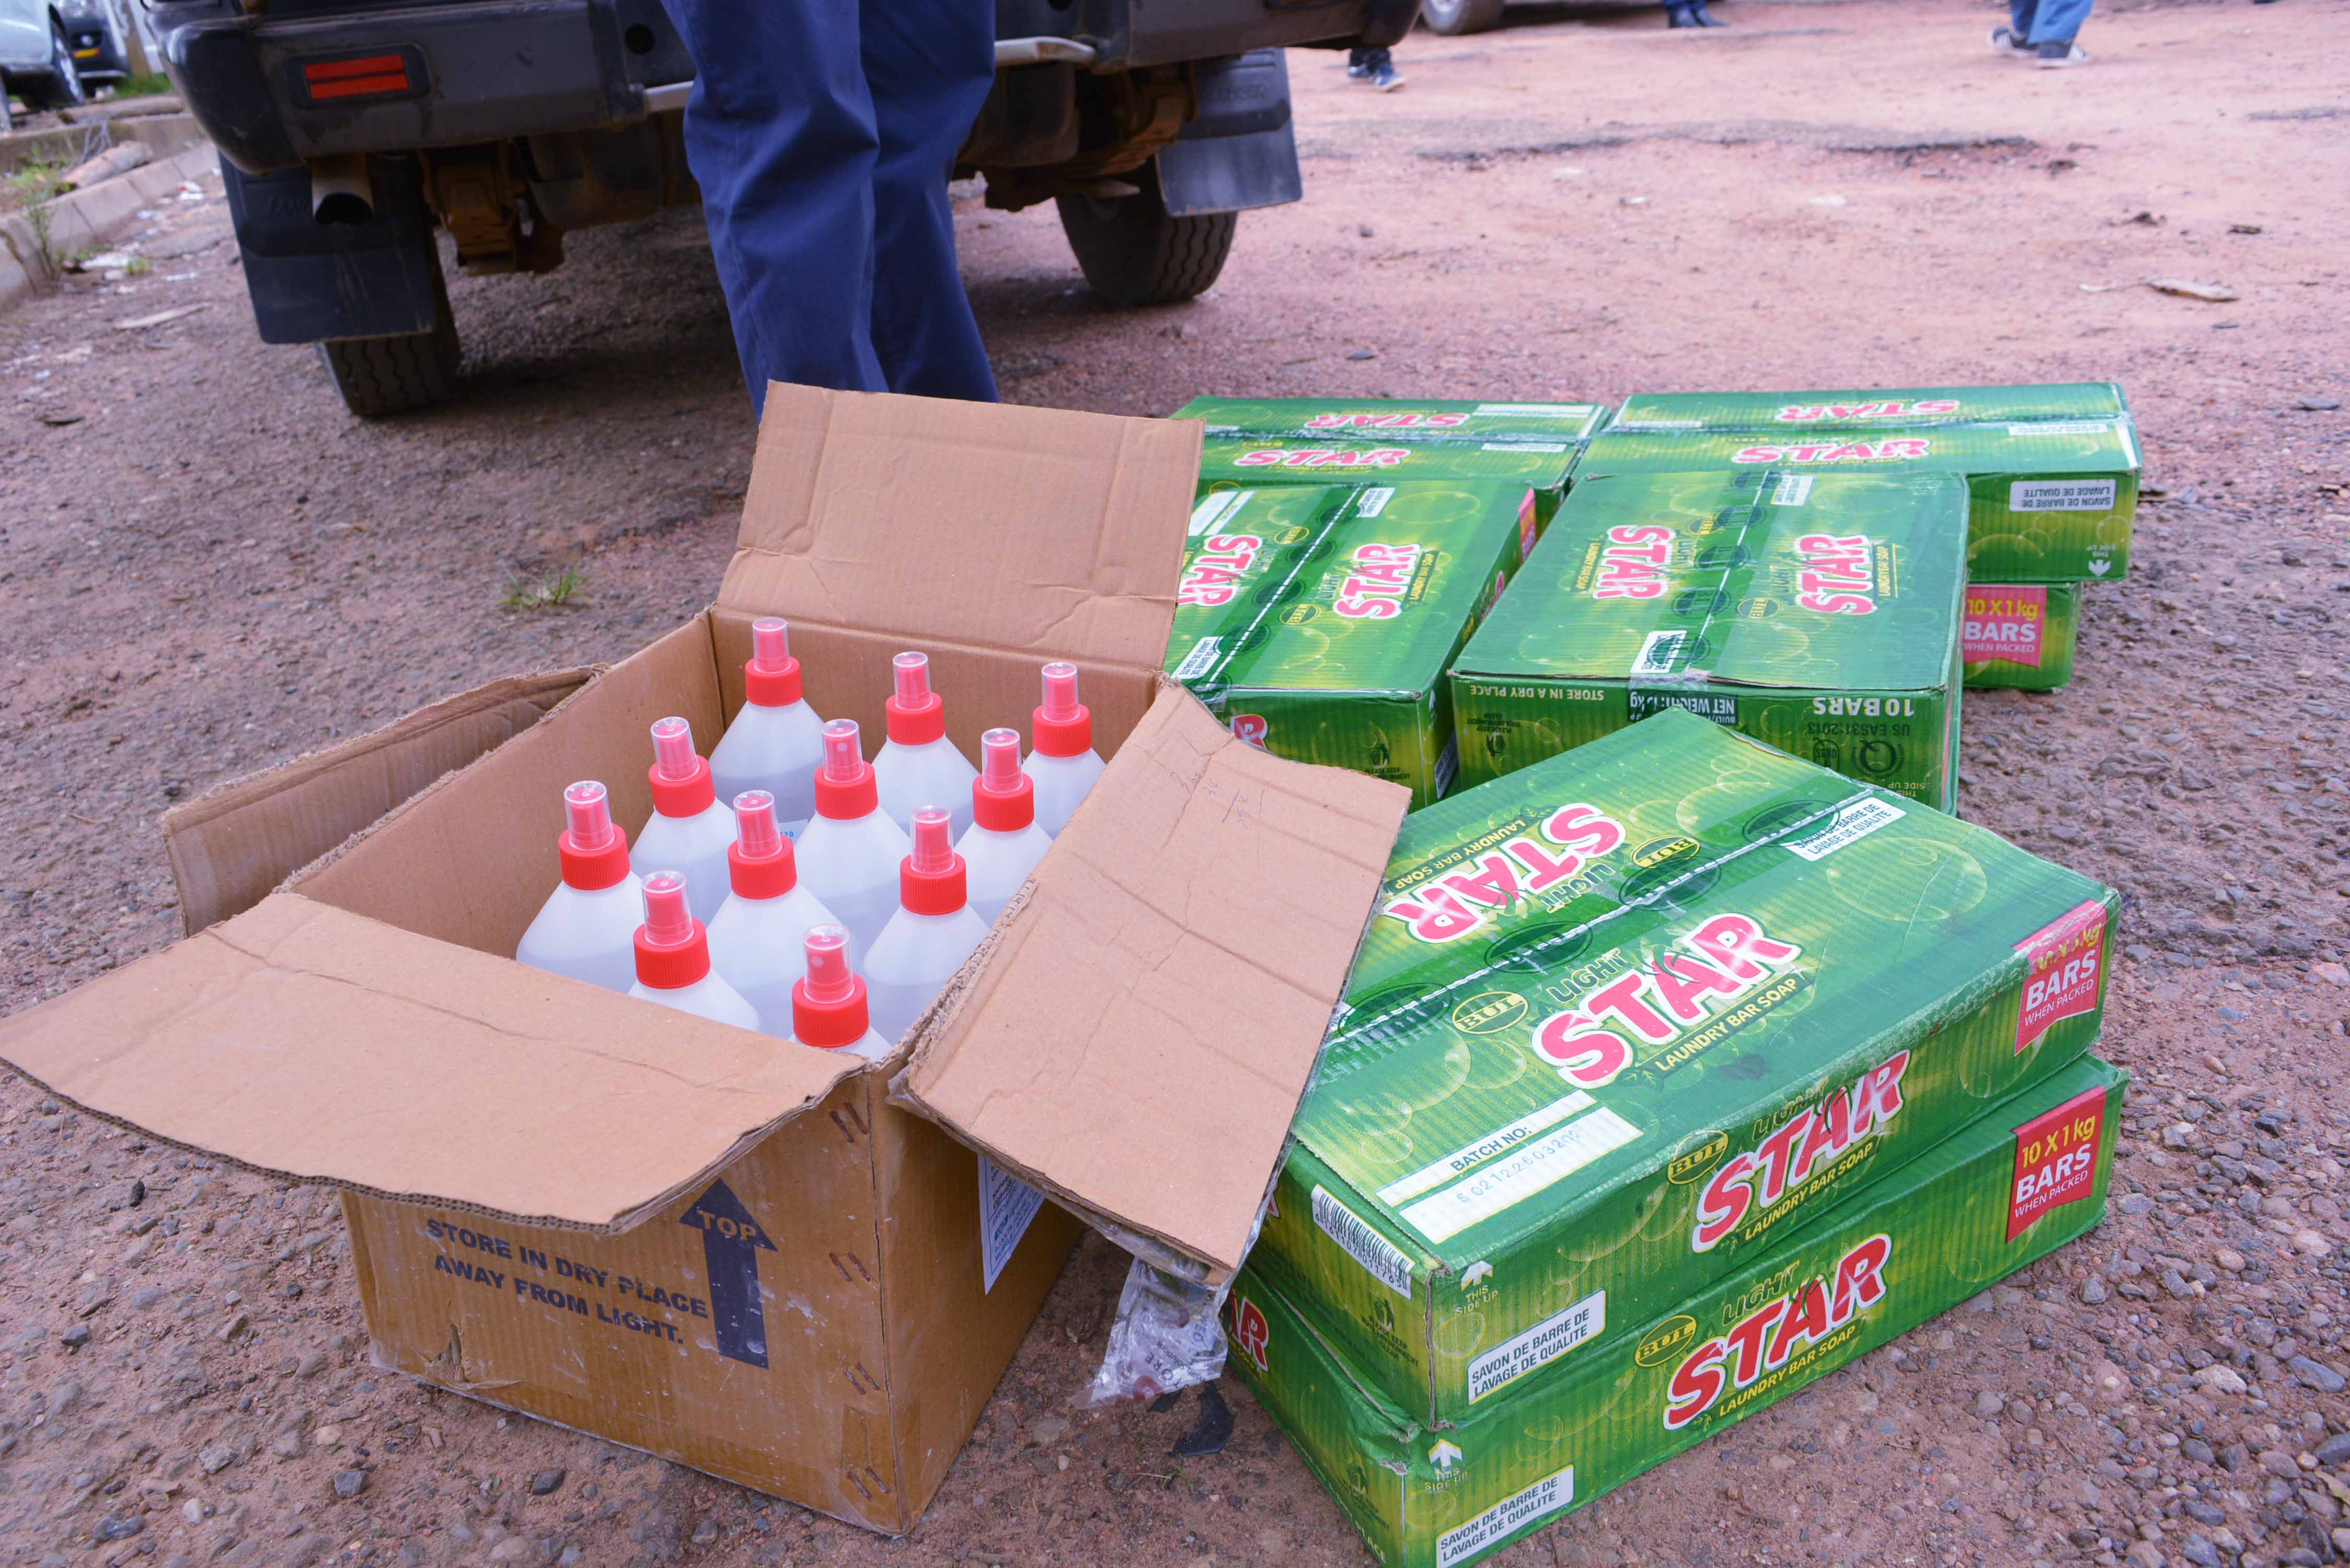 Bottles of sanitizer and some of the boxes of washing soap